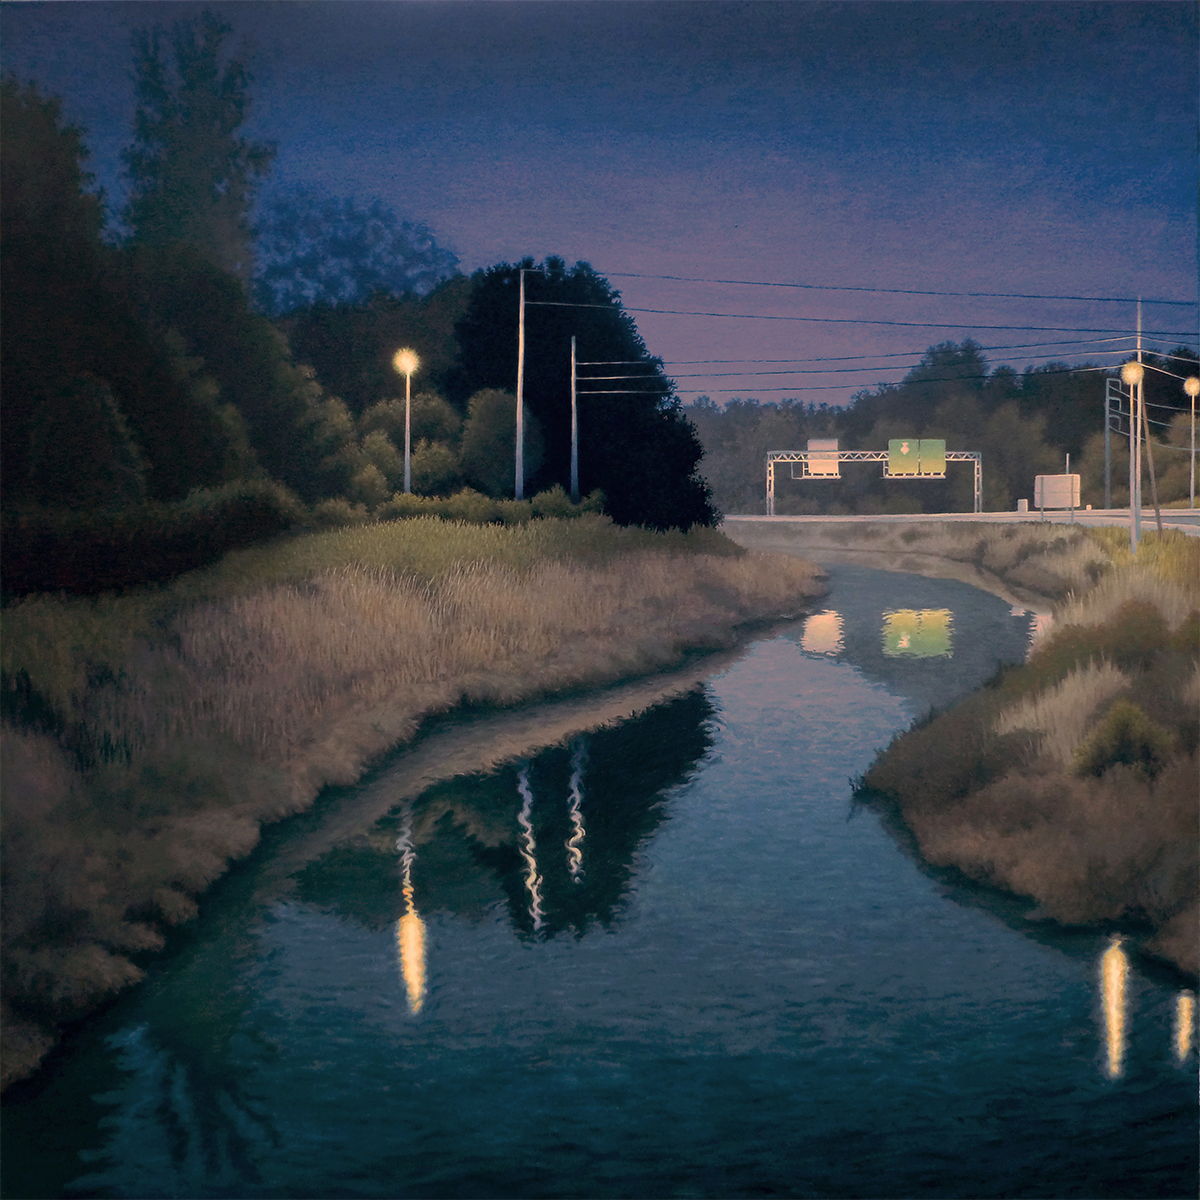 """Truman Parkway and Derrene, Roger Walton, 2014, Oil on canvas."